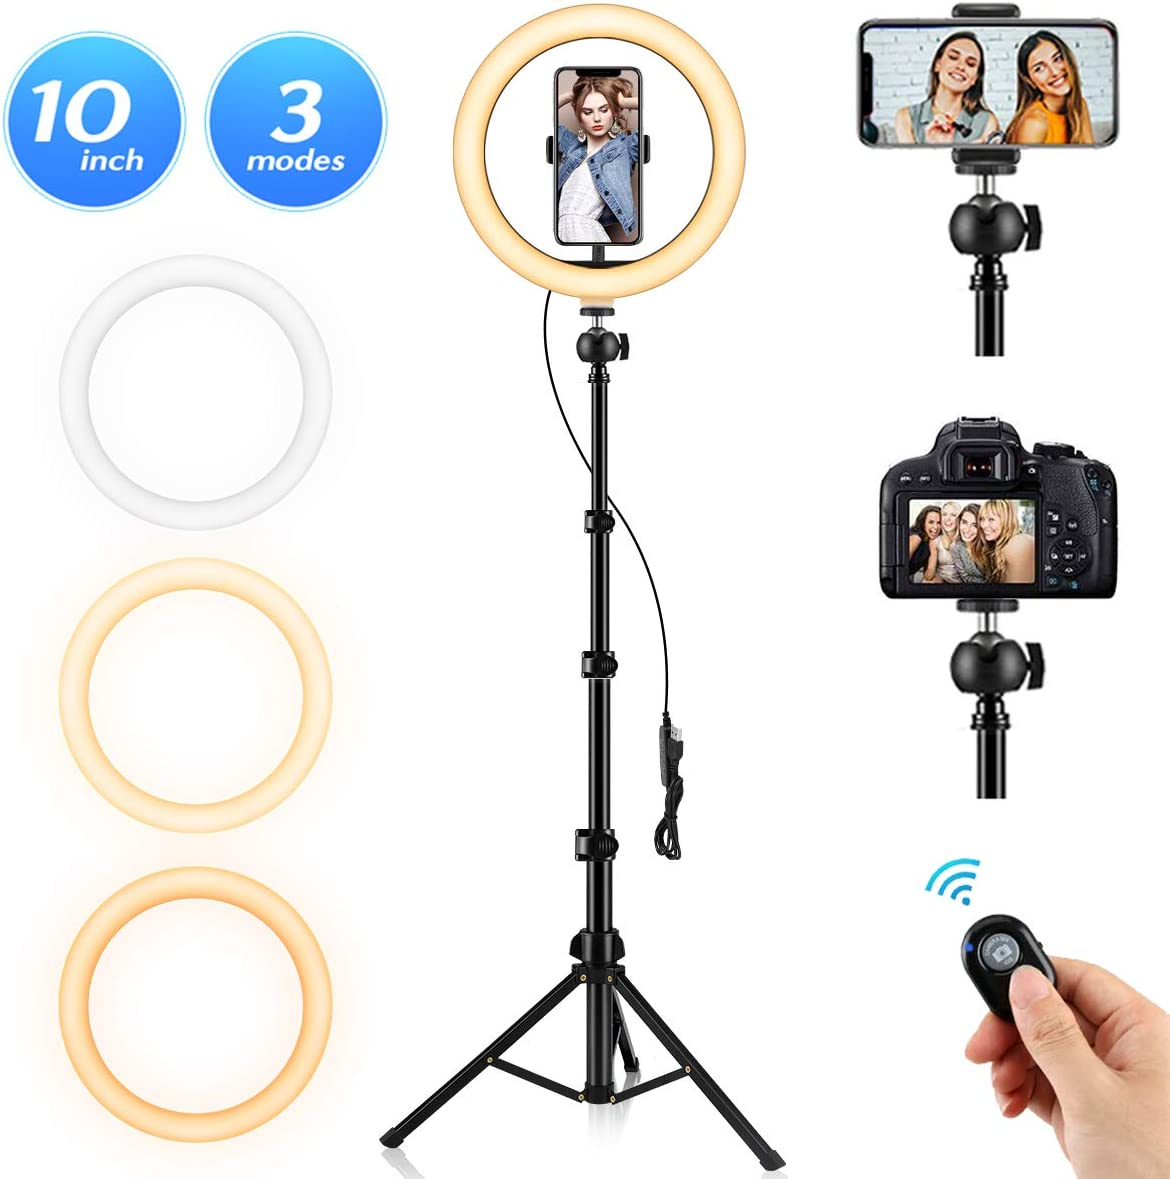 "Ring Light, 10.2"" Selfie Ring Light with Stand and Phone Holder, 3 Light Modes & 10 Brightness 120 Bulbs Dimmable Ring Light for YouTube Video/Makeup/Photography/Live Stream"